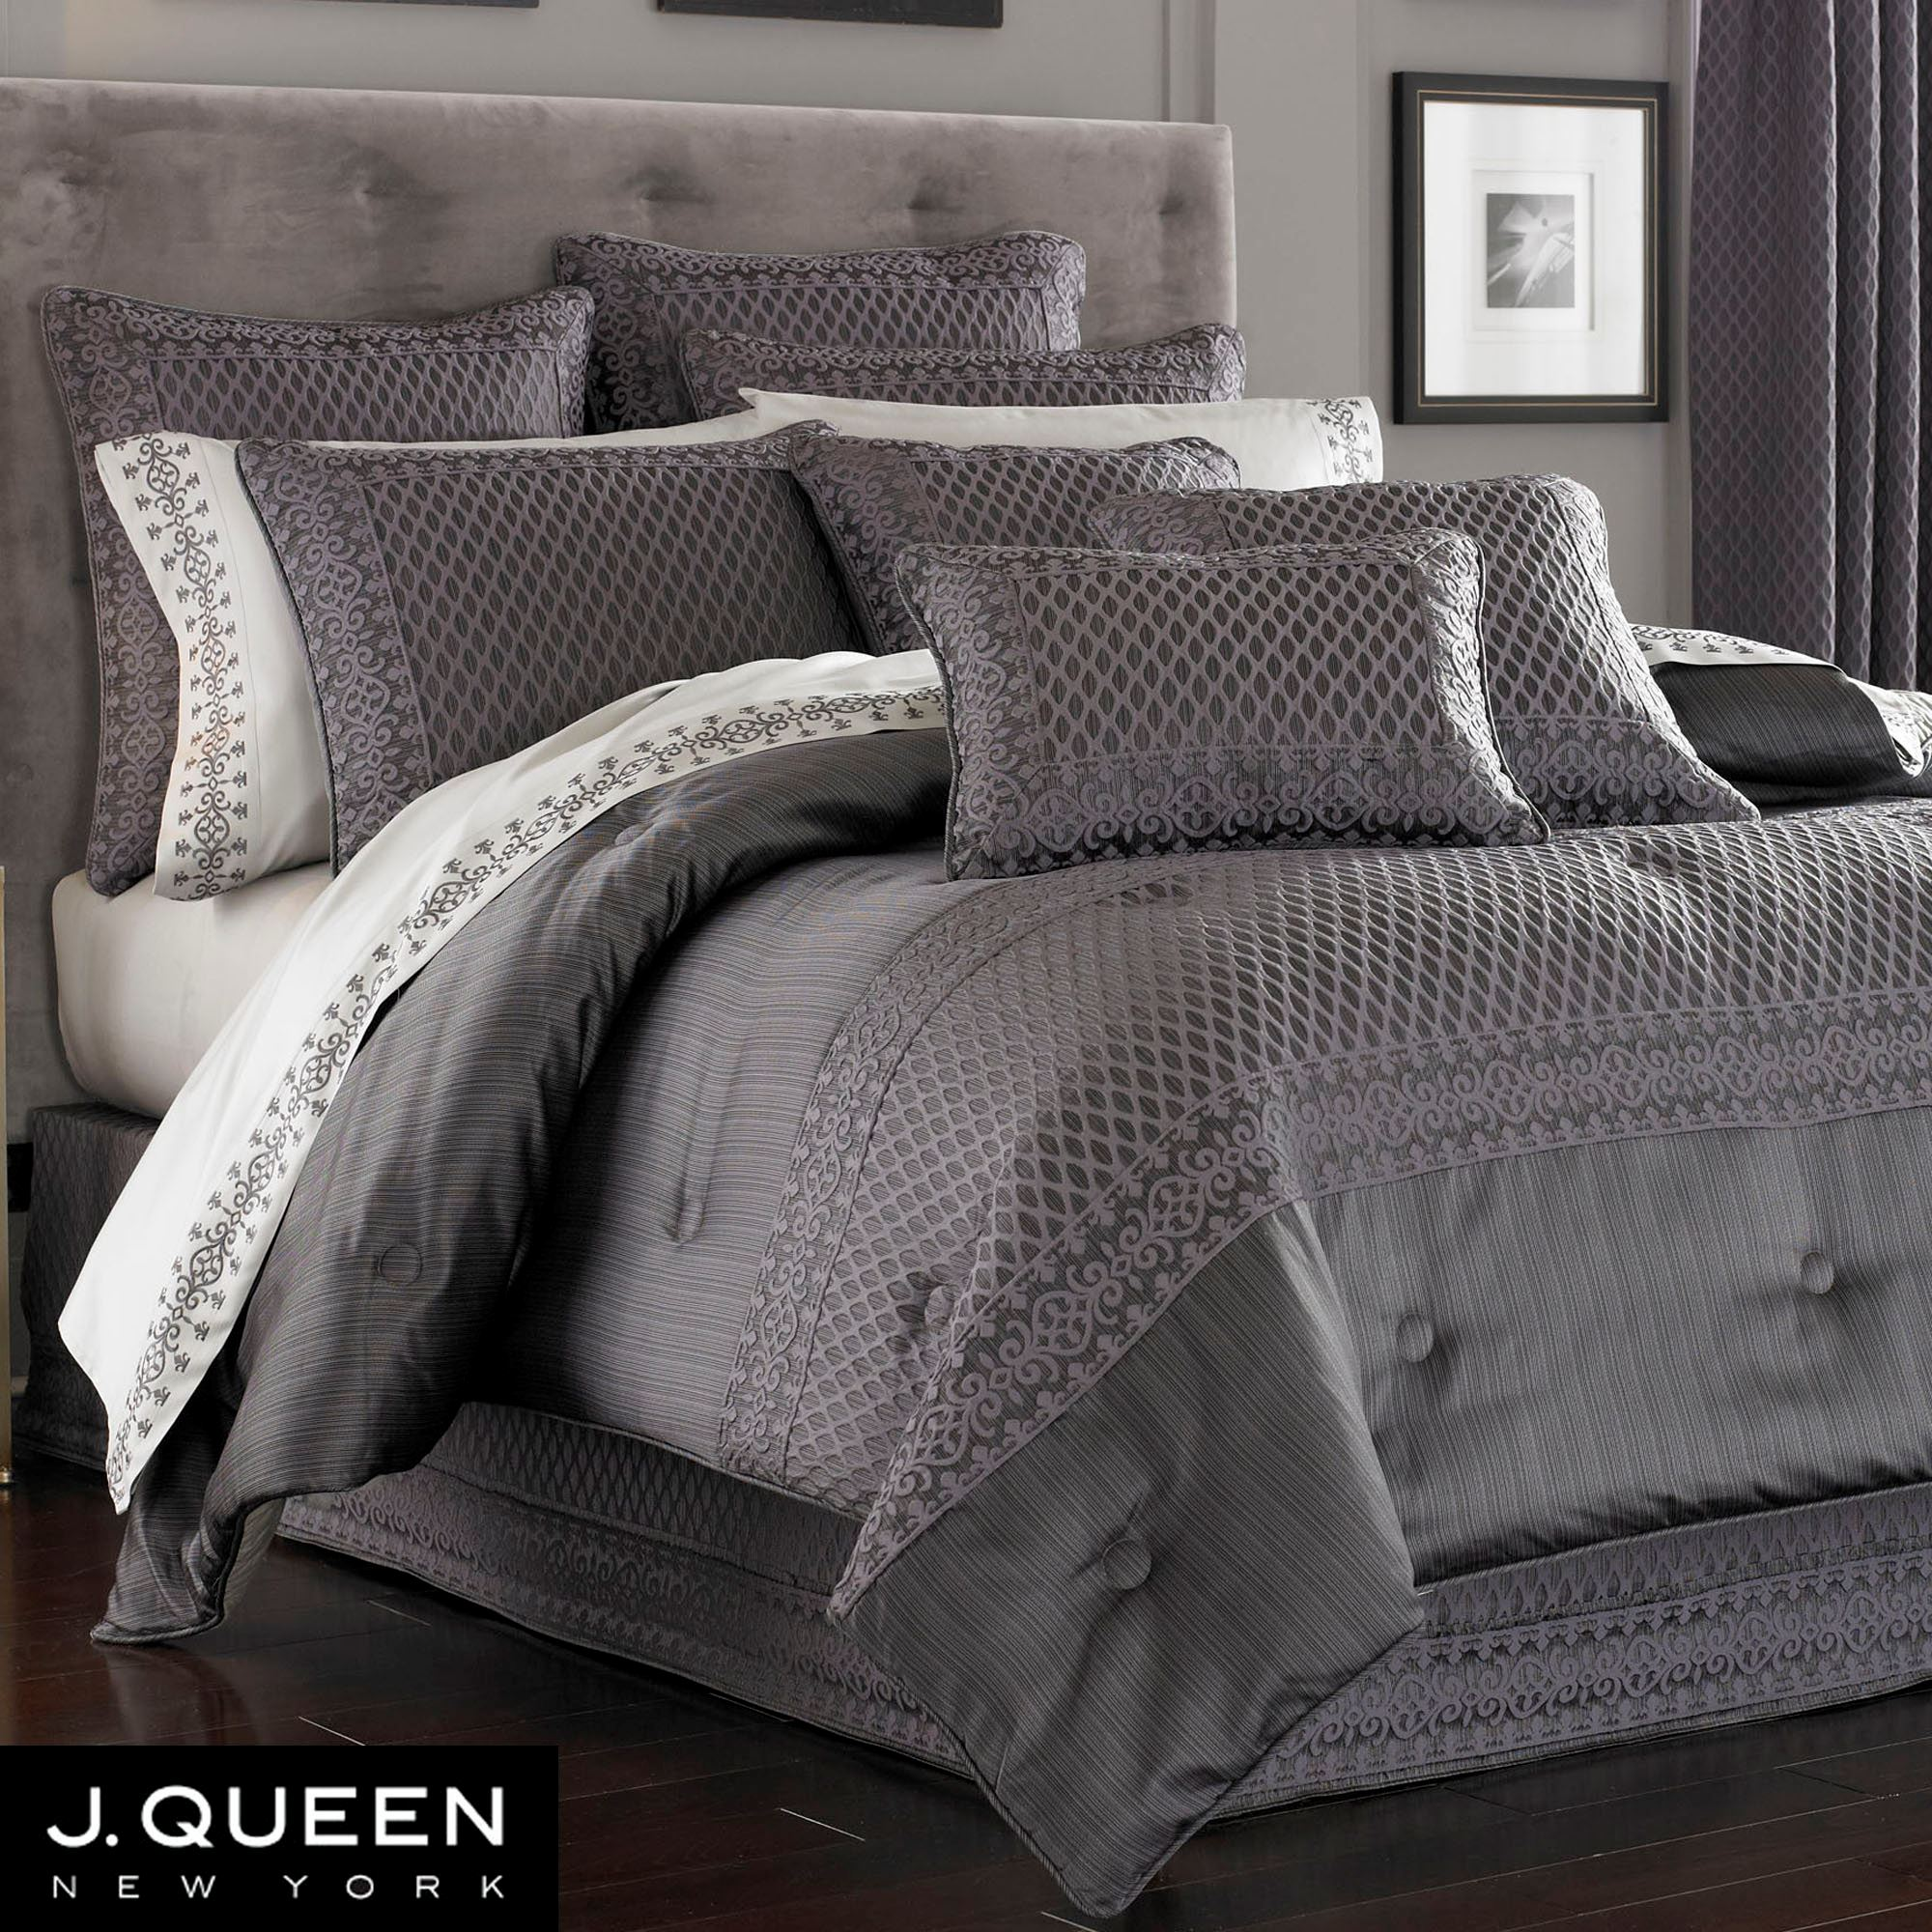 blanket clearance sleep dark fashionable well bed comforter sets queen for grey